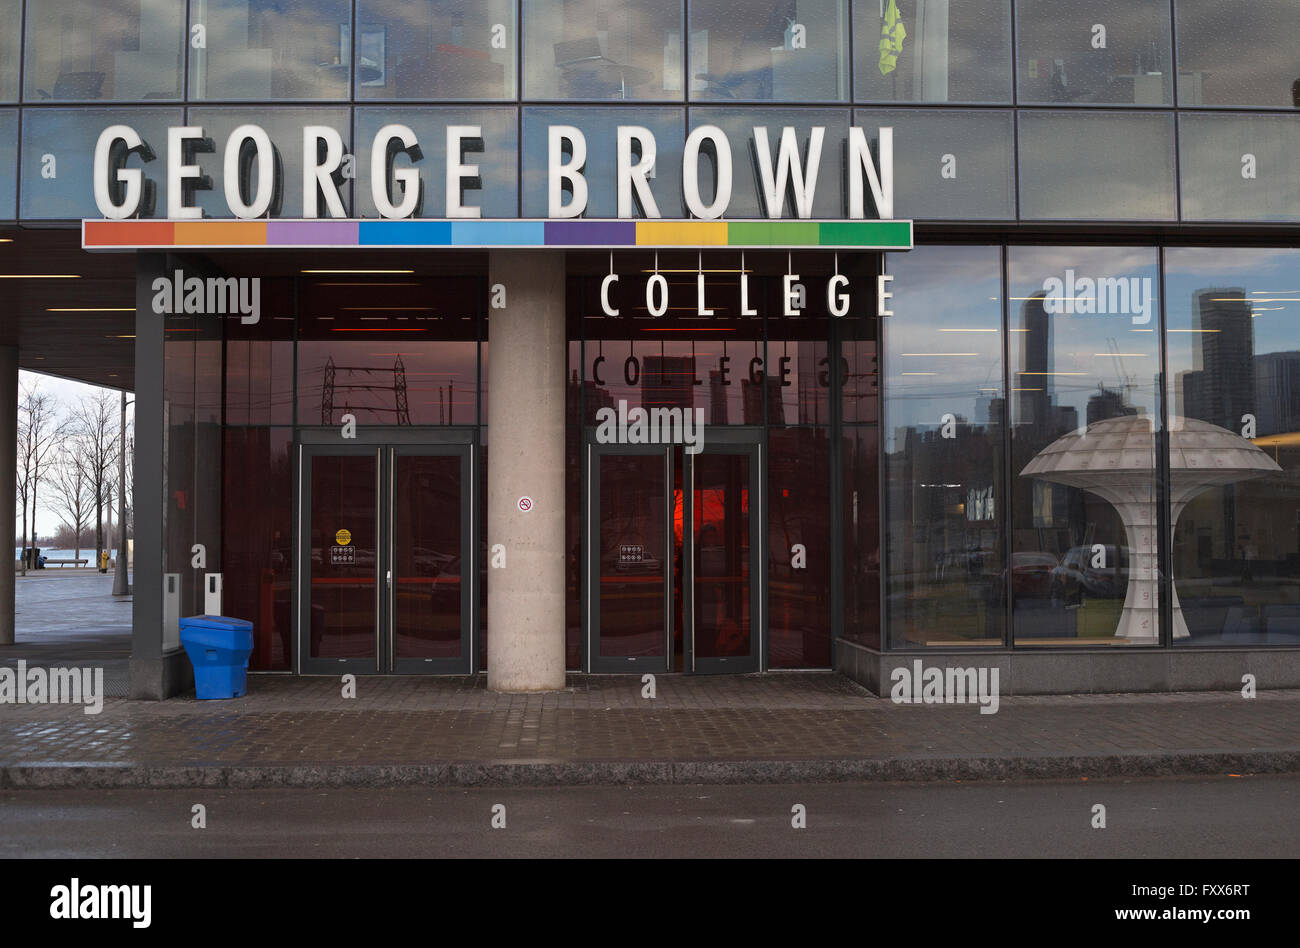 George Brown College campus - Stock Image